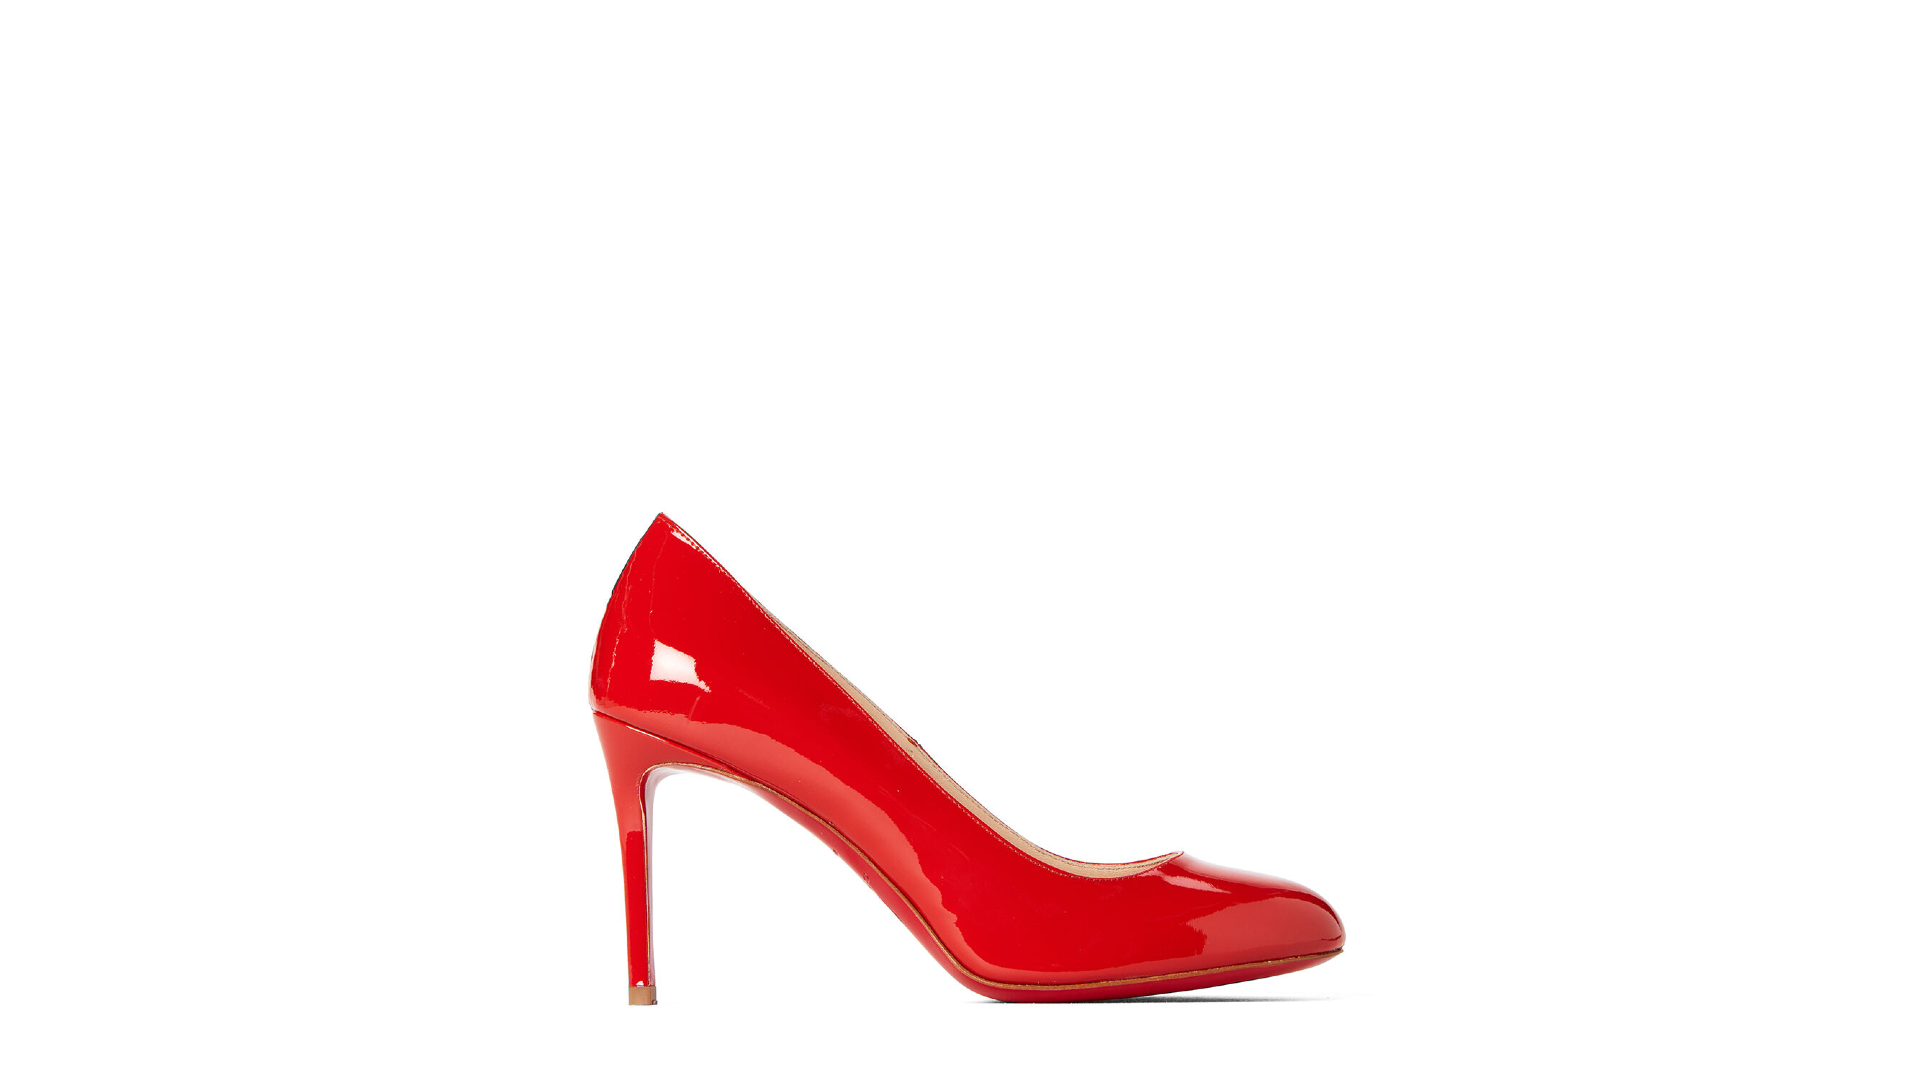 Louboutin Shoes Fifi Model